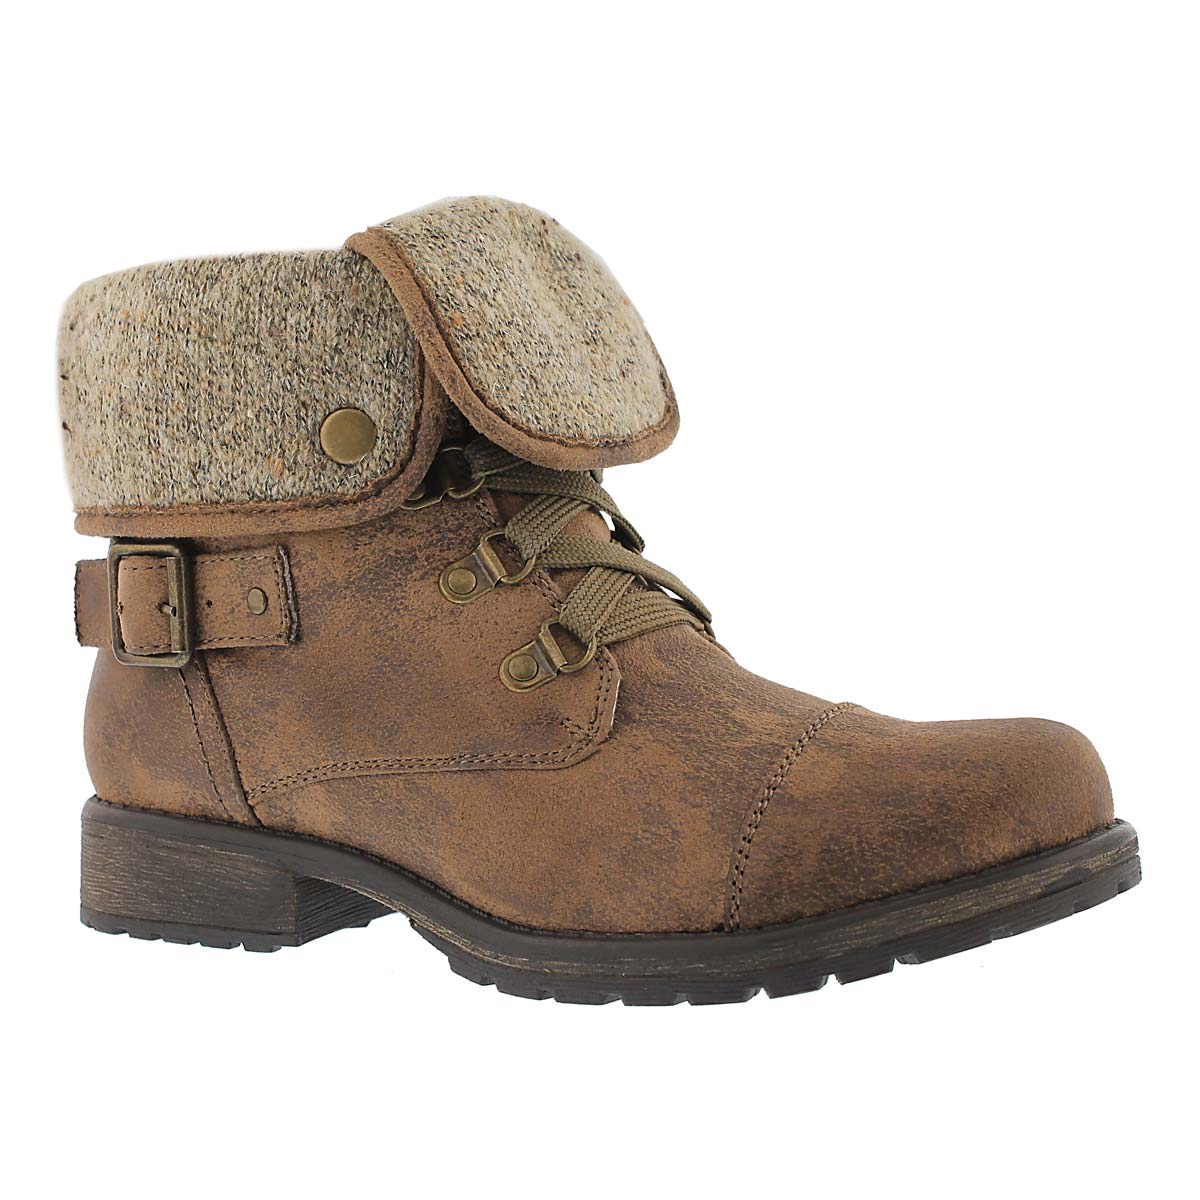 Women's AVERY 2 brown lace up casual boots